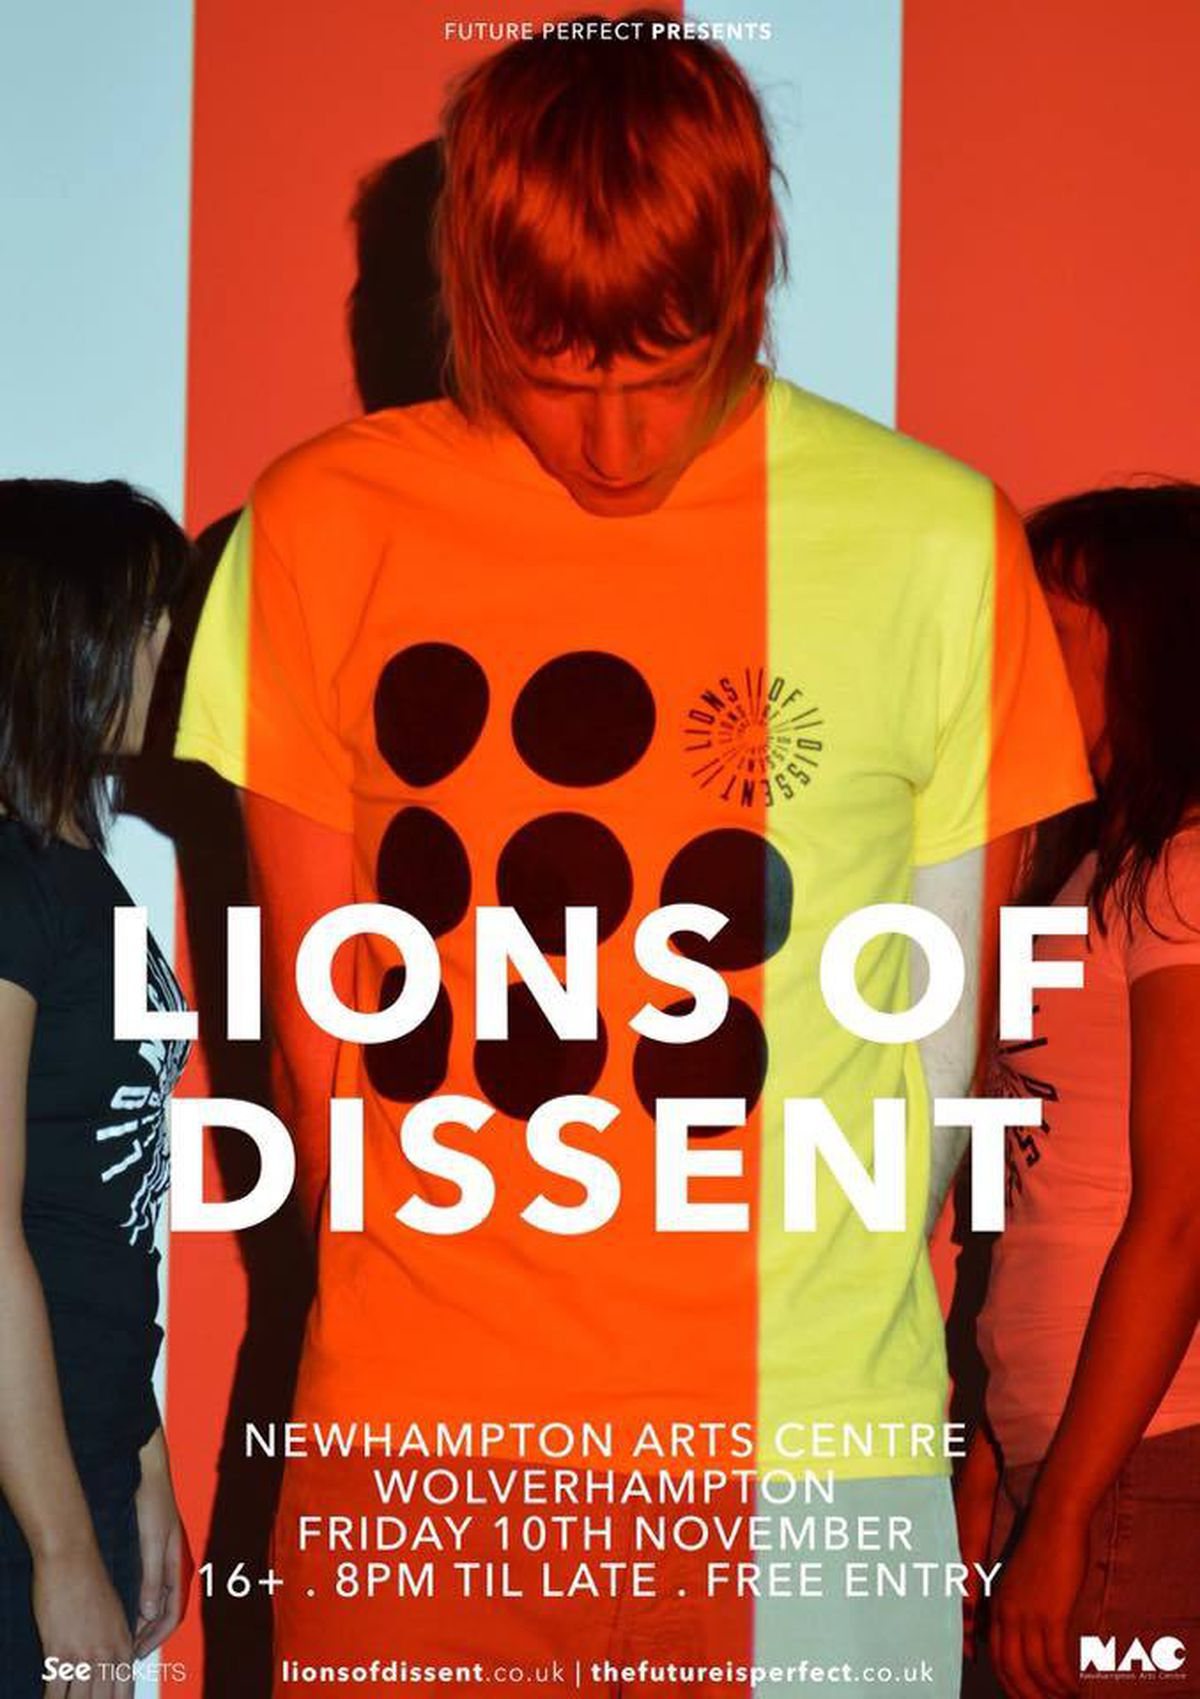 Unsigned band Lions of Dissent talk ahead of Wolverhampton gig